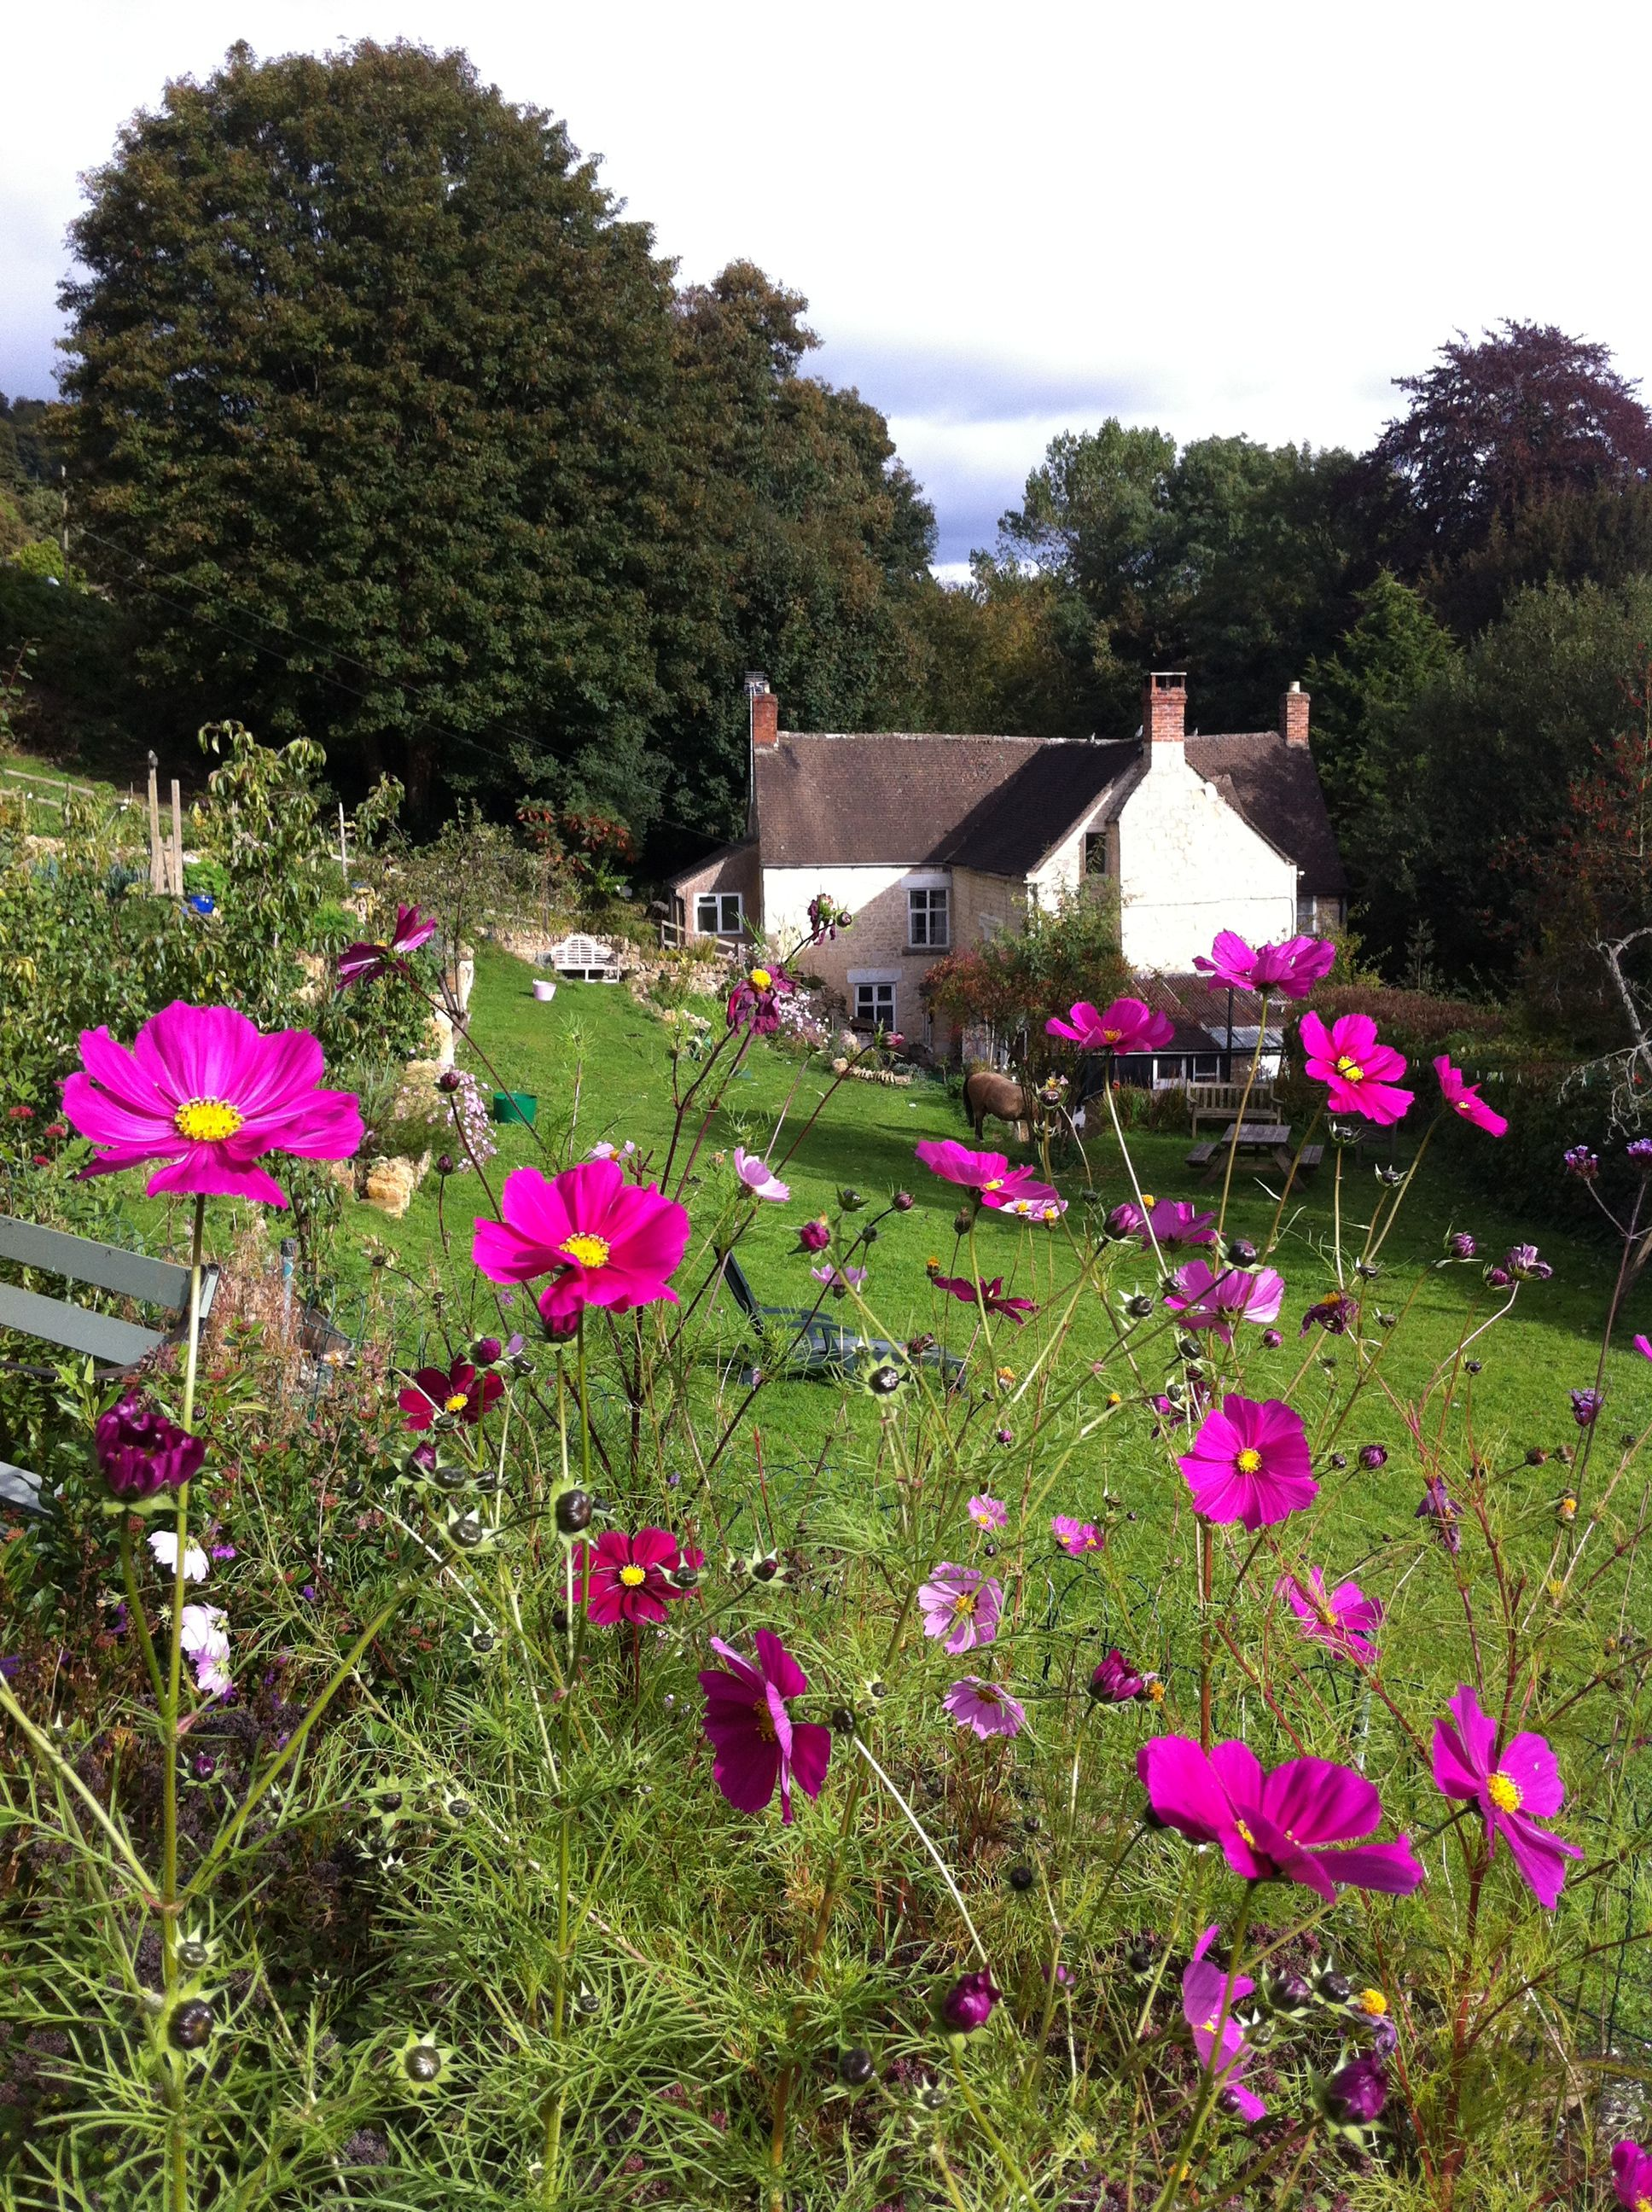 Cosmos keep flowering until the first frosts, keeping the garden bright and cheery!